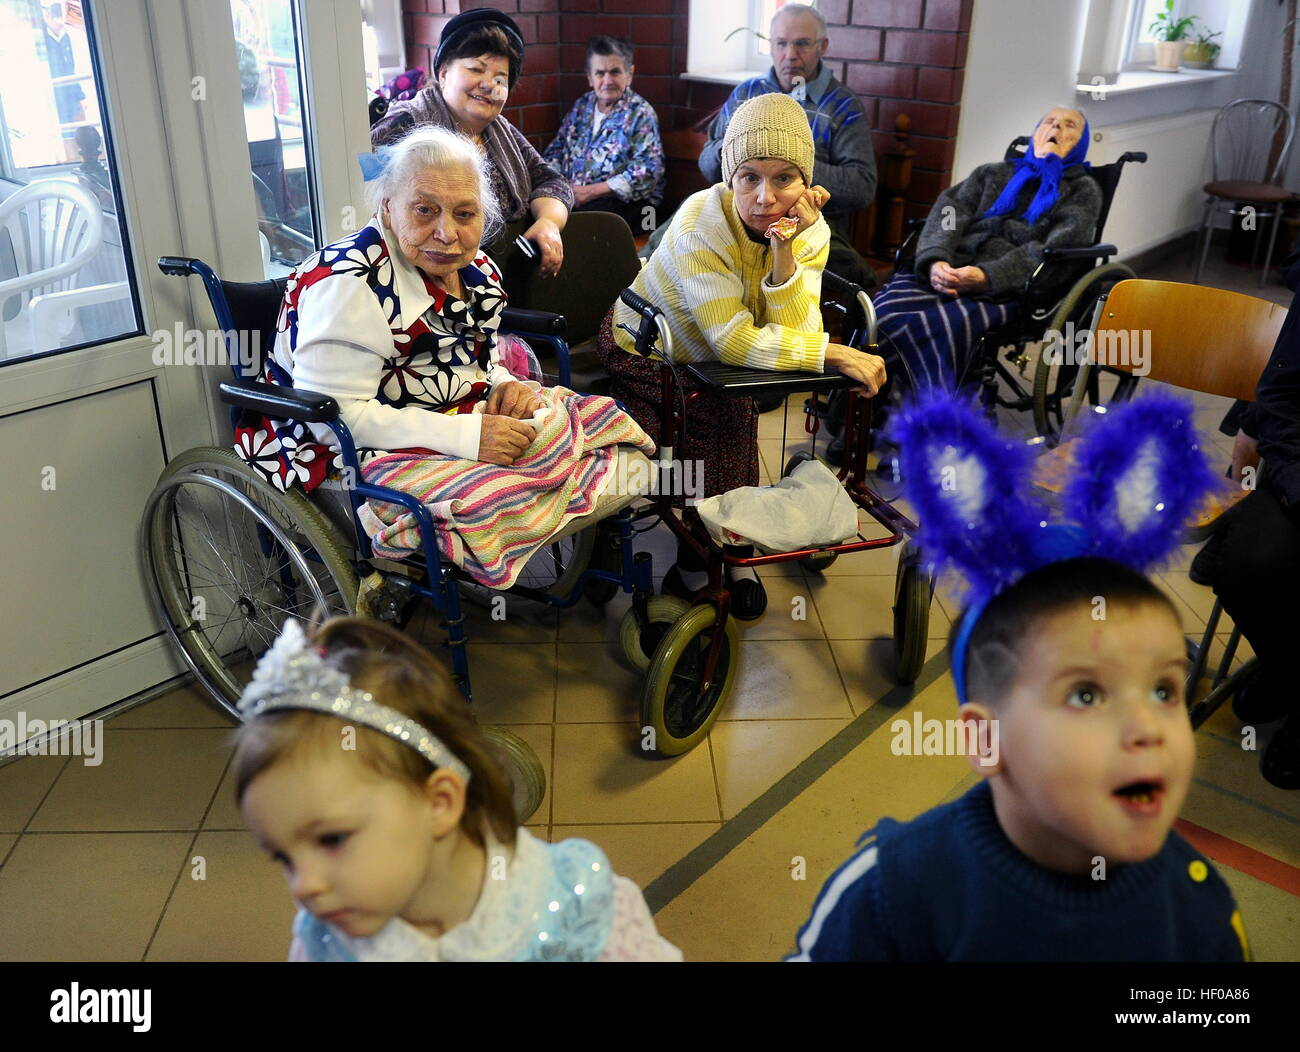 Brest Region, Belarus. 25th Dec, 2016. A New Year and Christmas celebration for elderly people, people with disabilities, - Stock Image